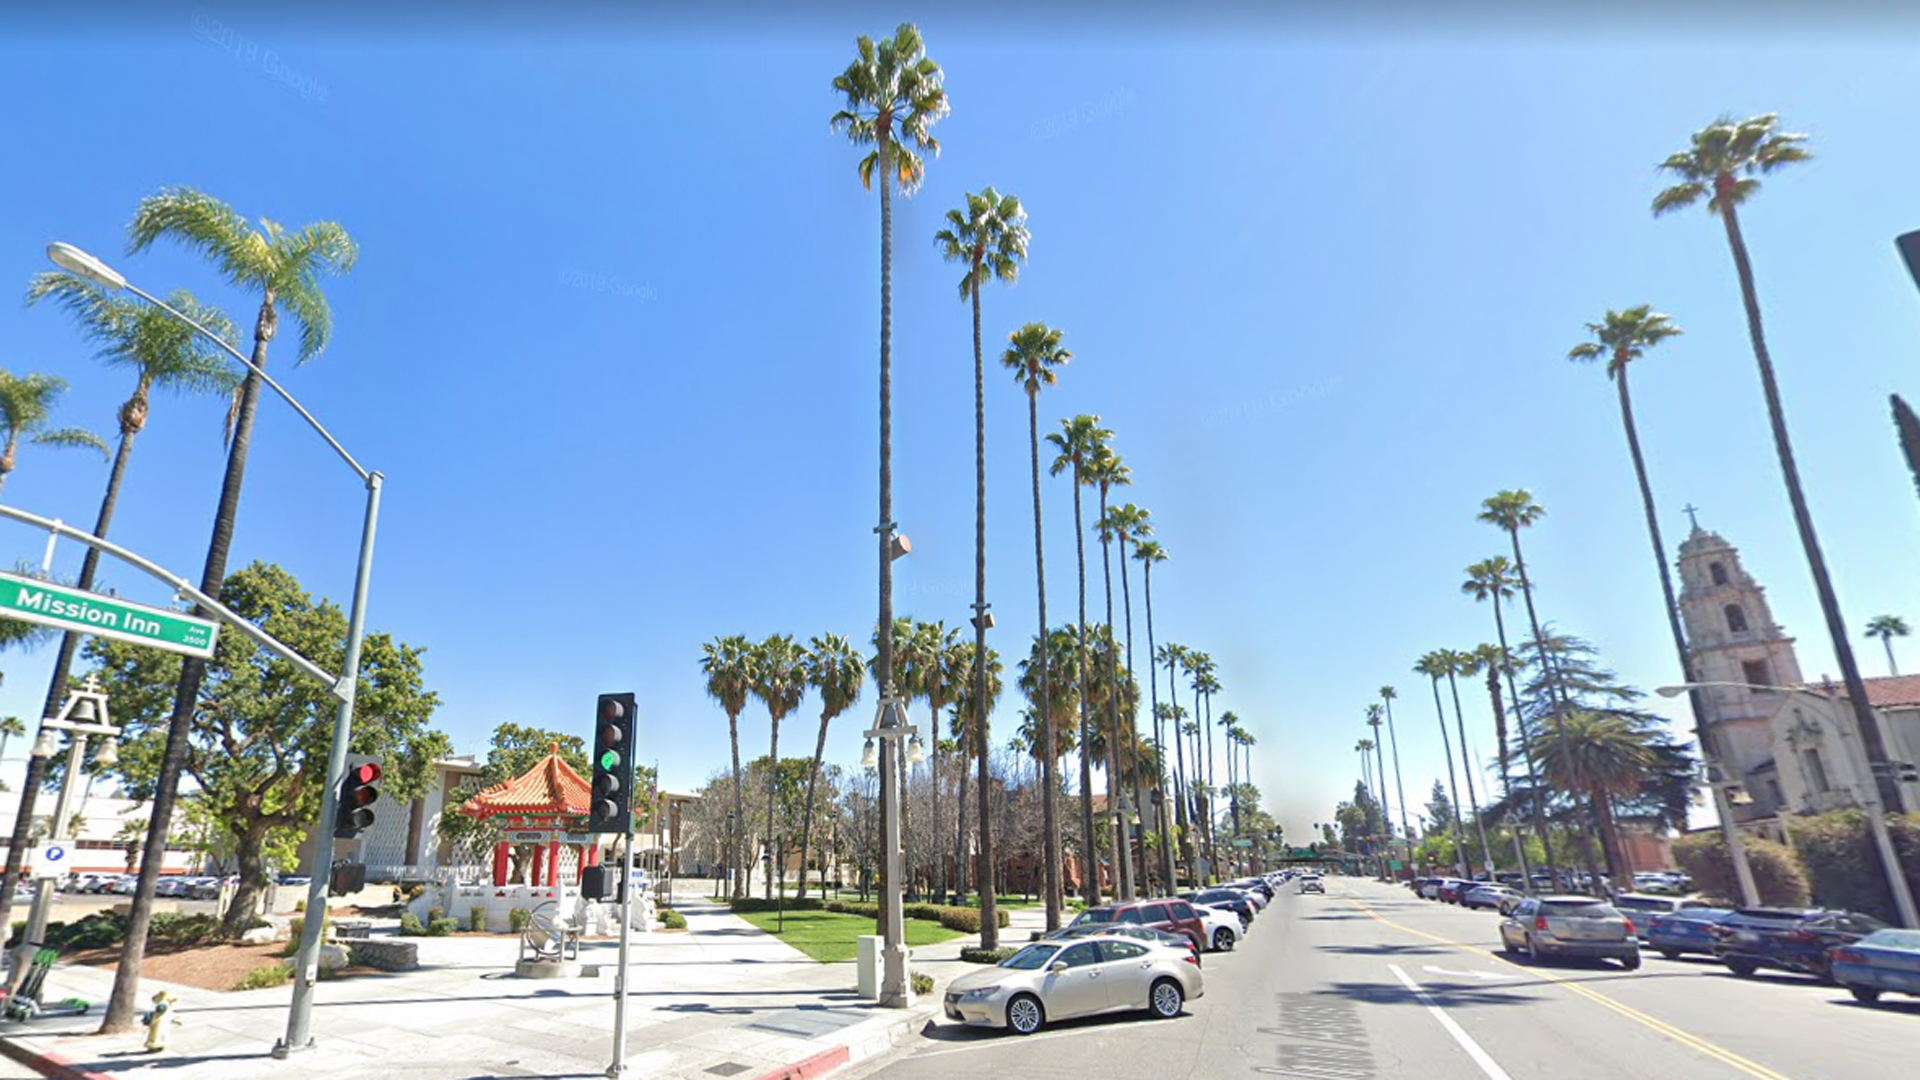 The area of Mission Inn Avenue and Orange Street in Riverside is seen in this undated image from Google Maps.